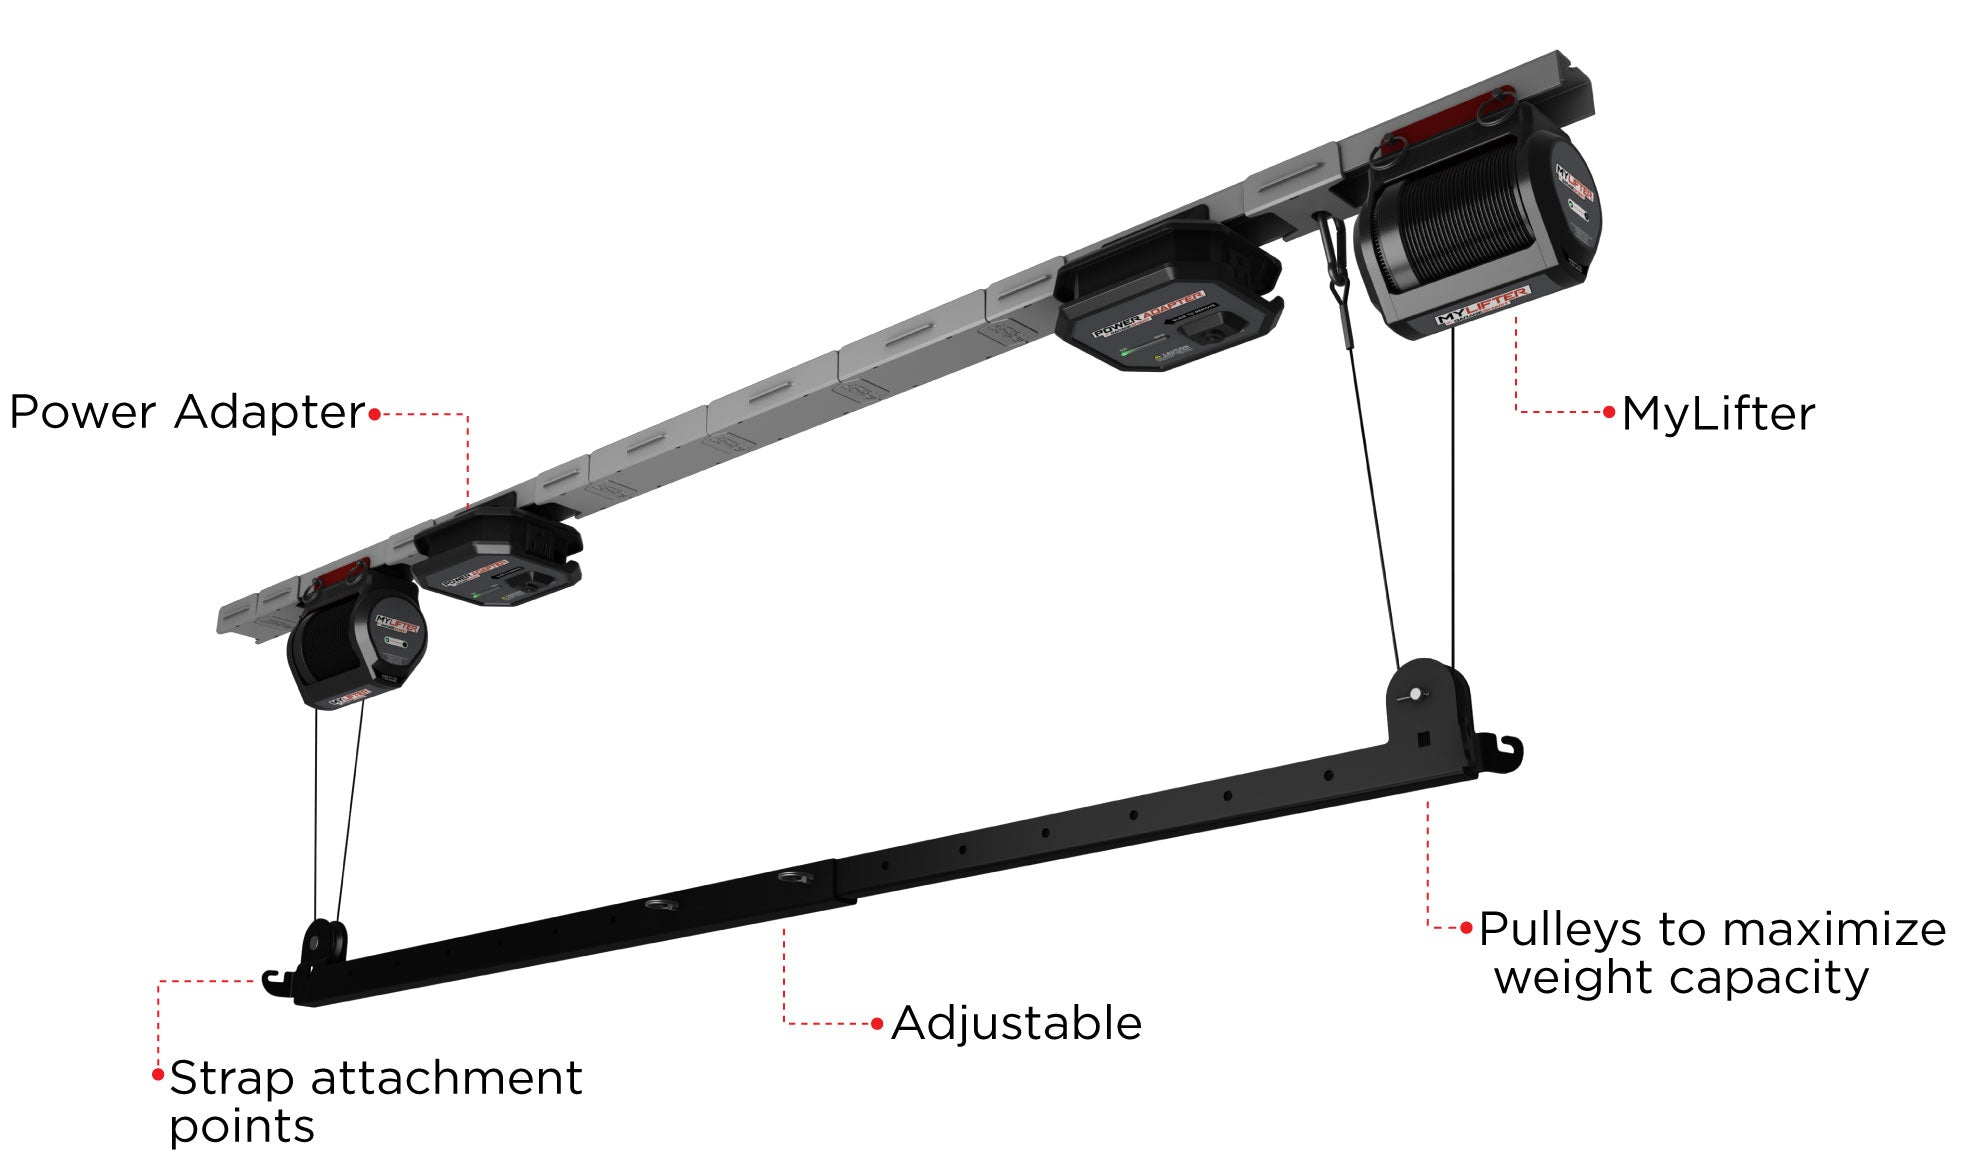 Universal XL HD Lifter Features